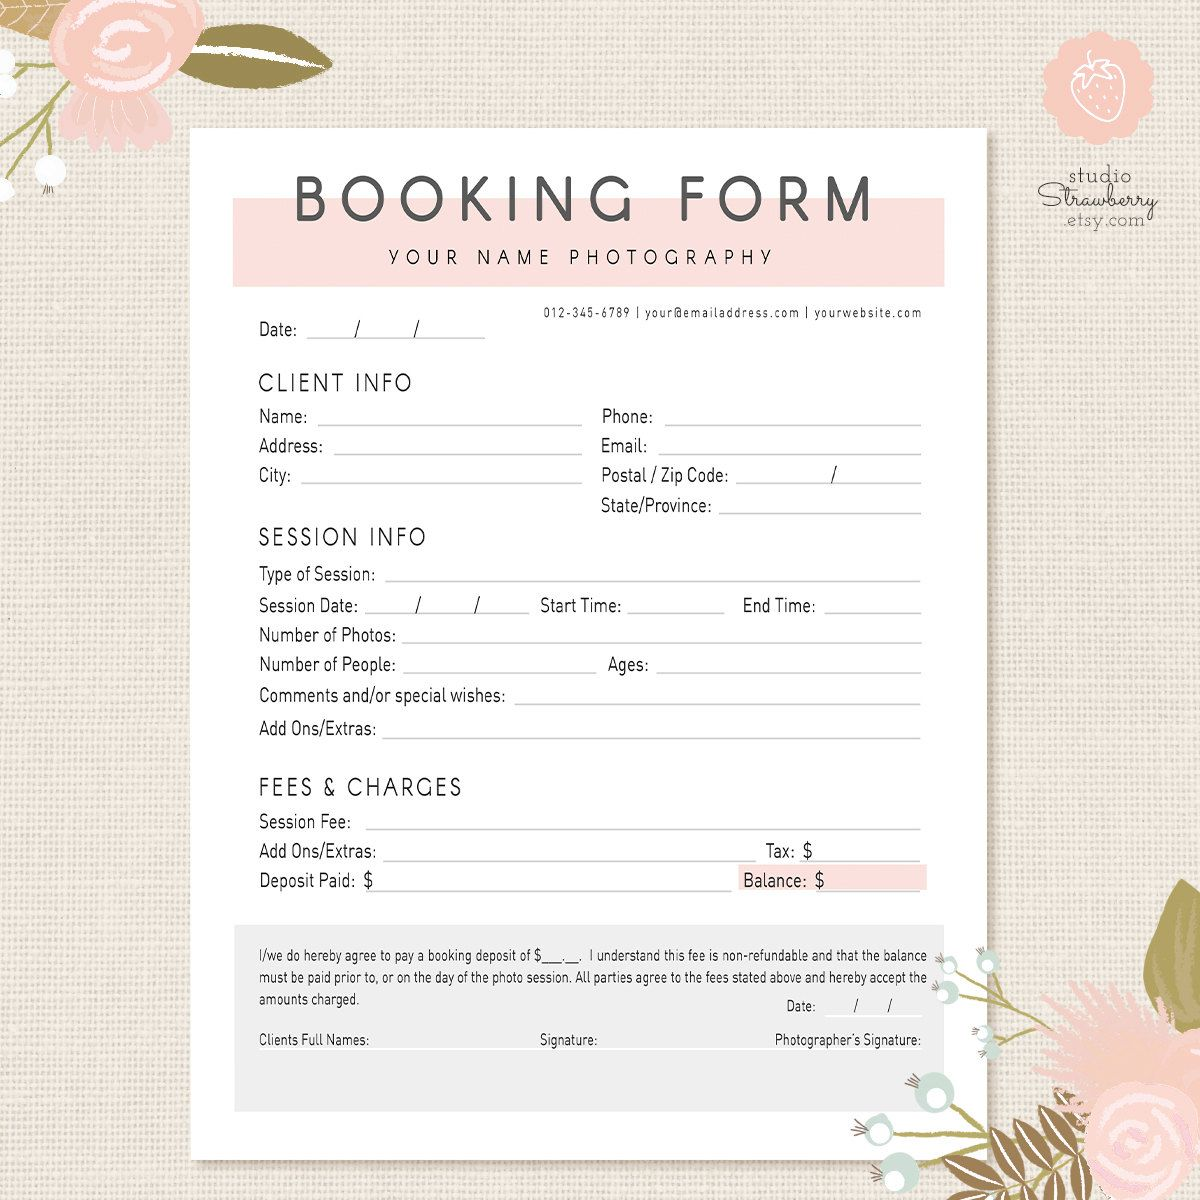 photography forms client booking form for photographer invoice template photography invoice business invoice receipt template for photographers photography forms photoshop template psd file